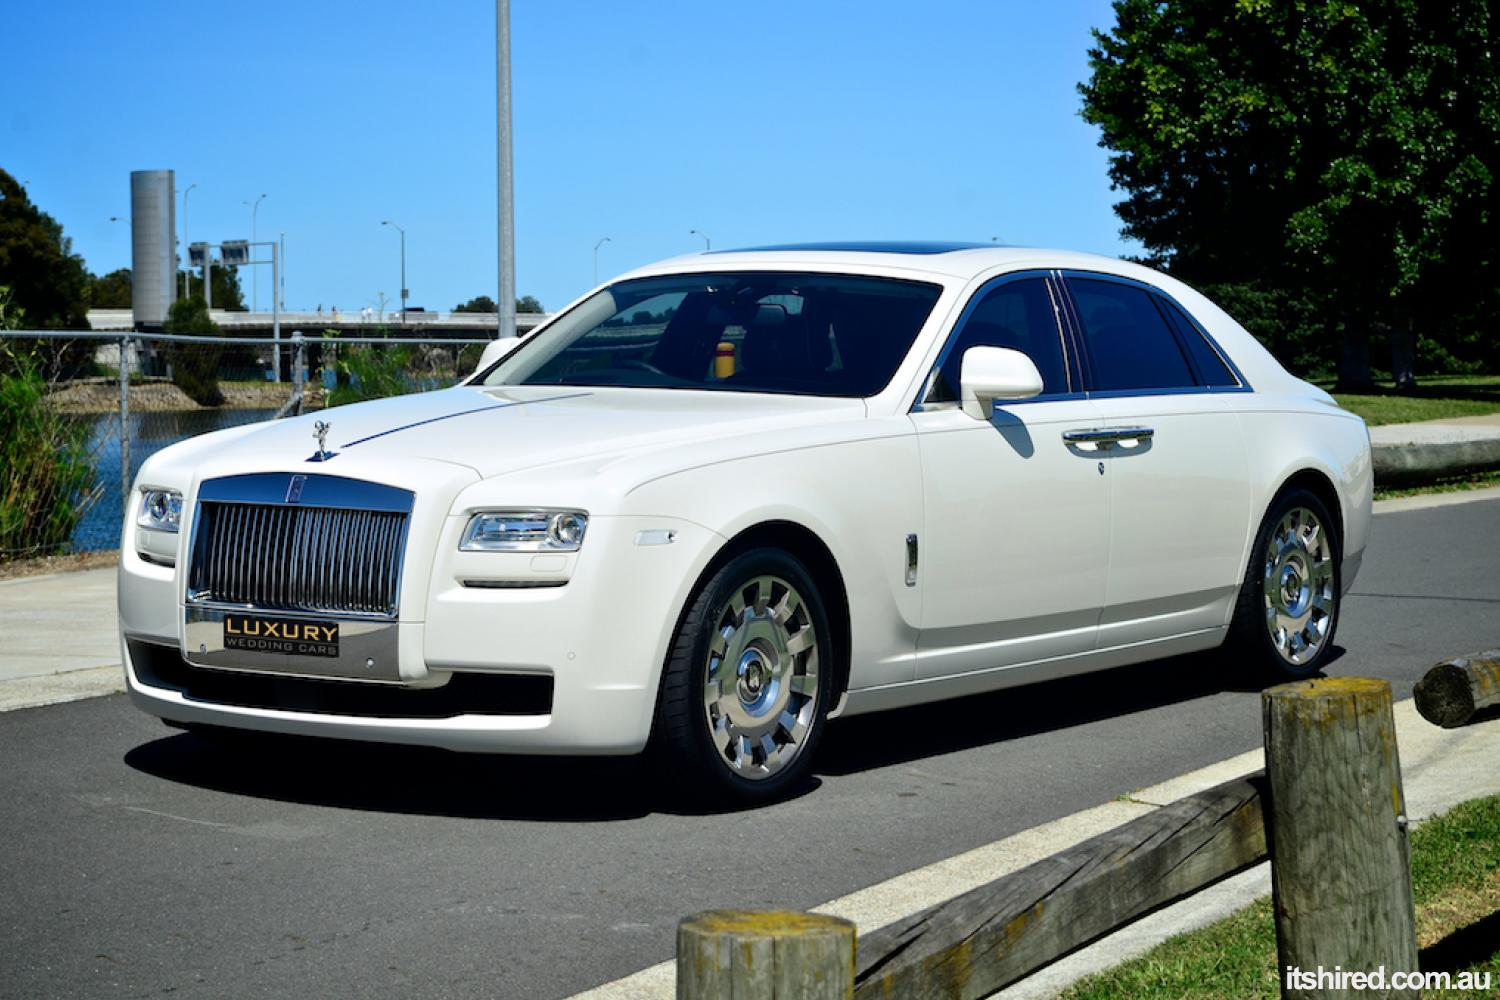 Rolls Royce Ghost Wedding Car Hire Sydney Luxury Wedding Cars Sydney